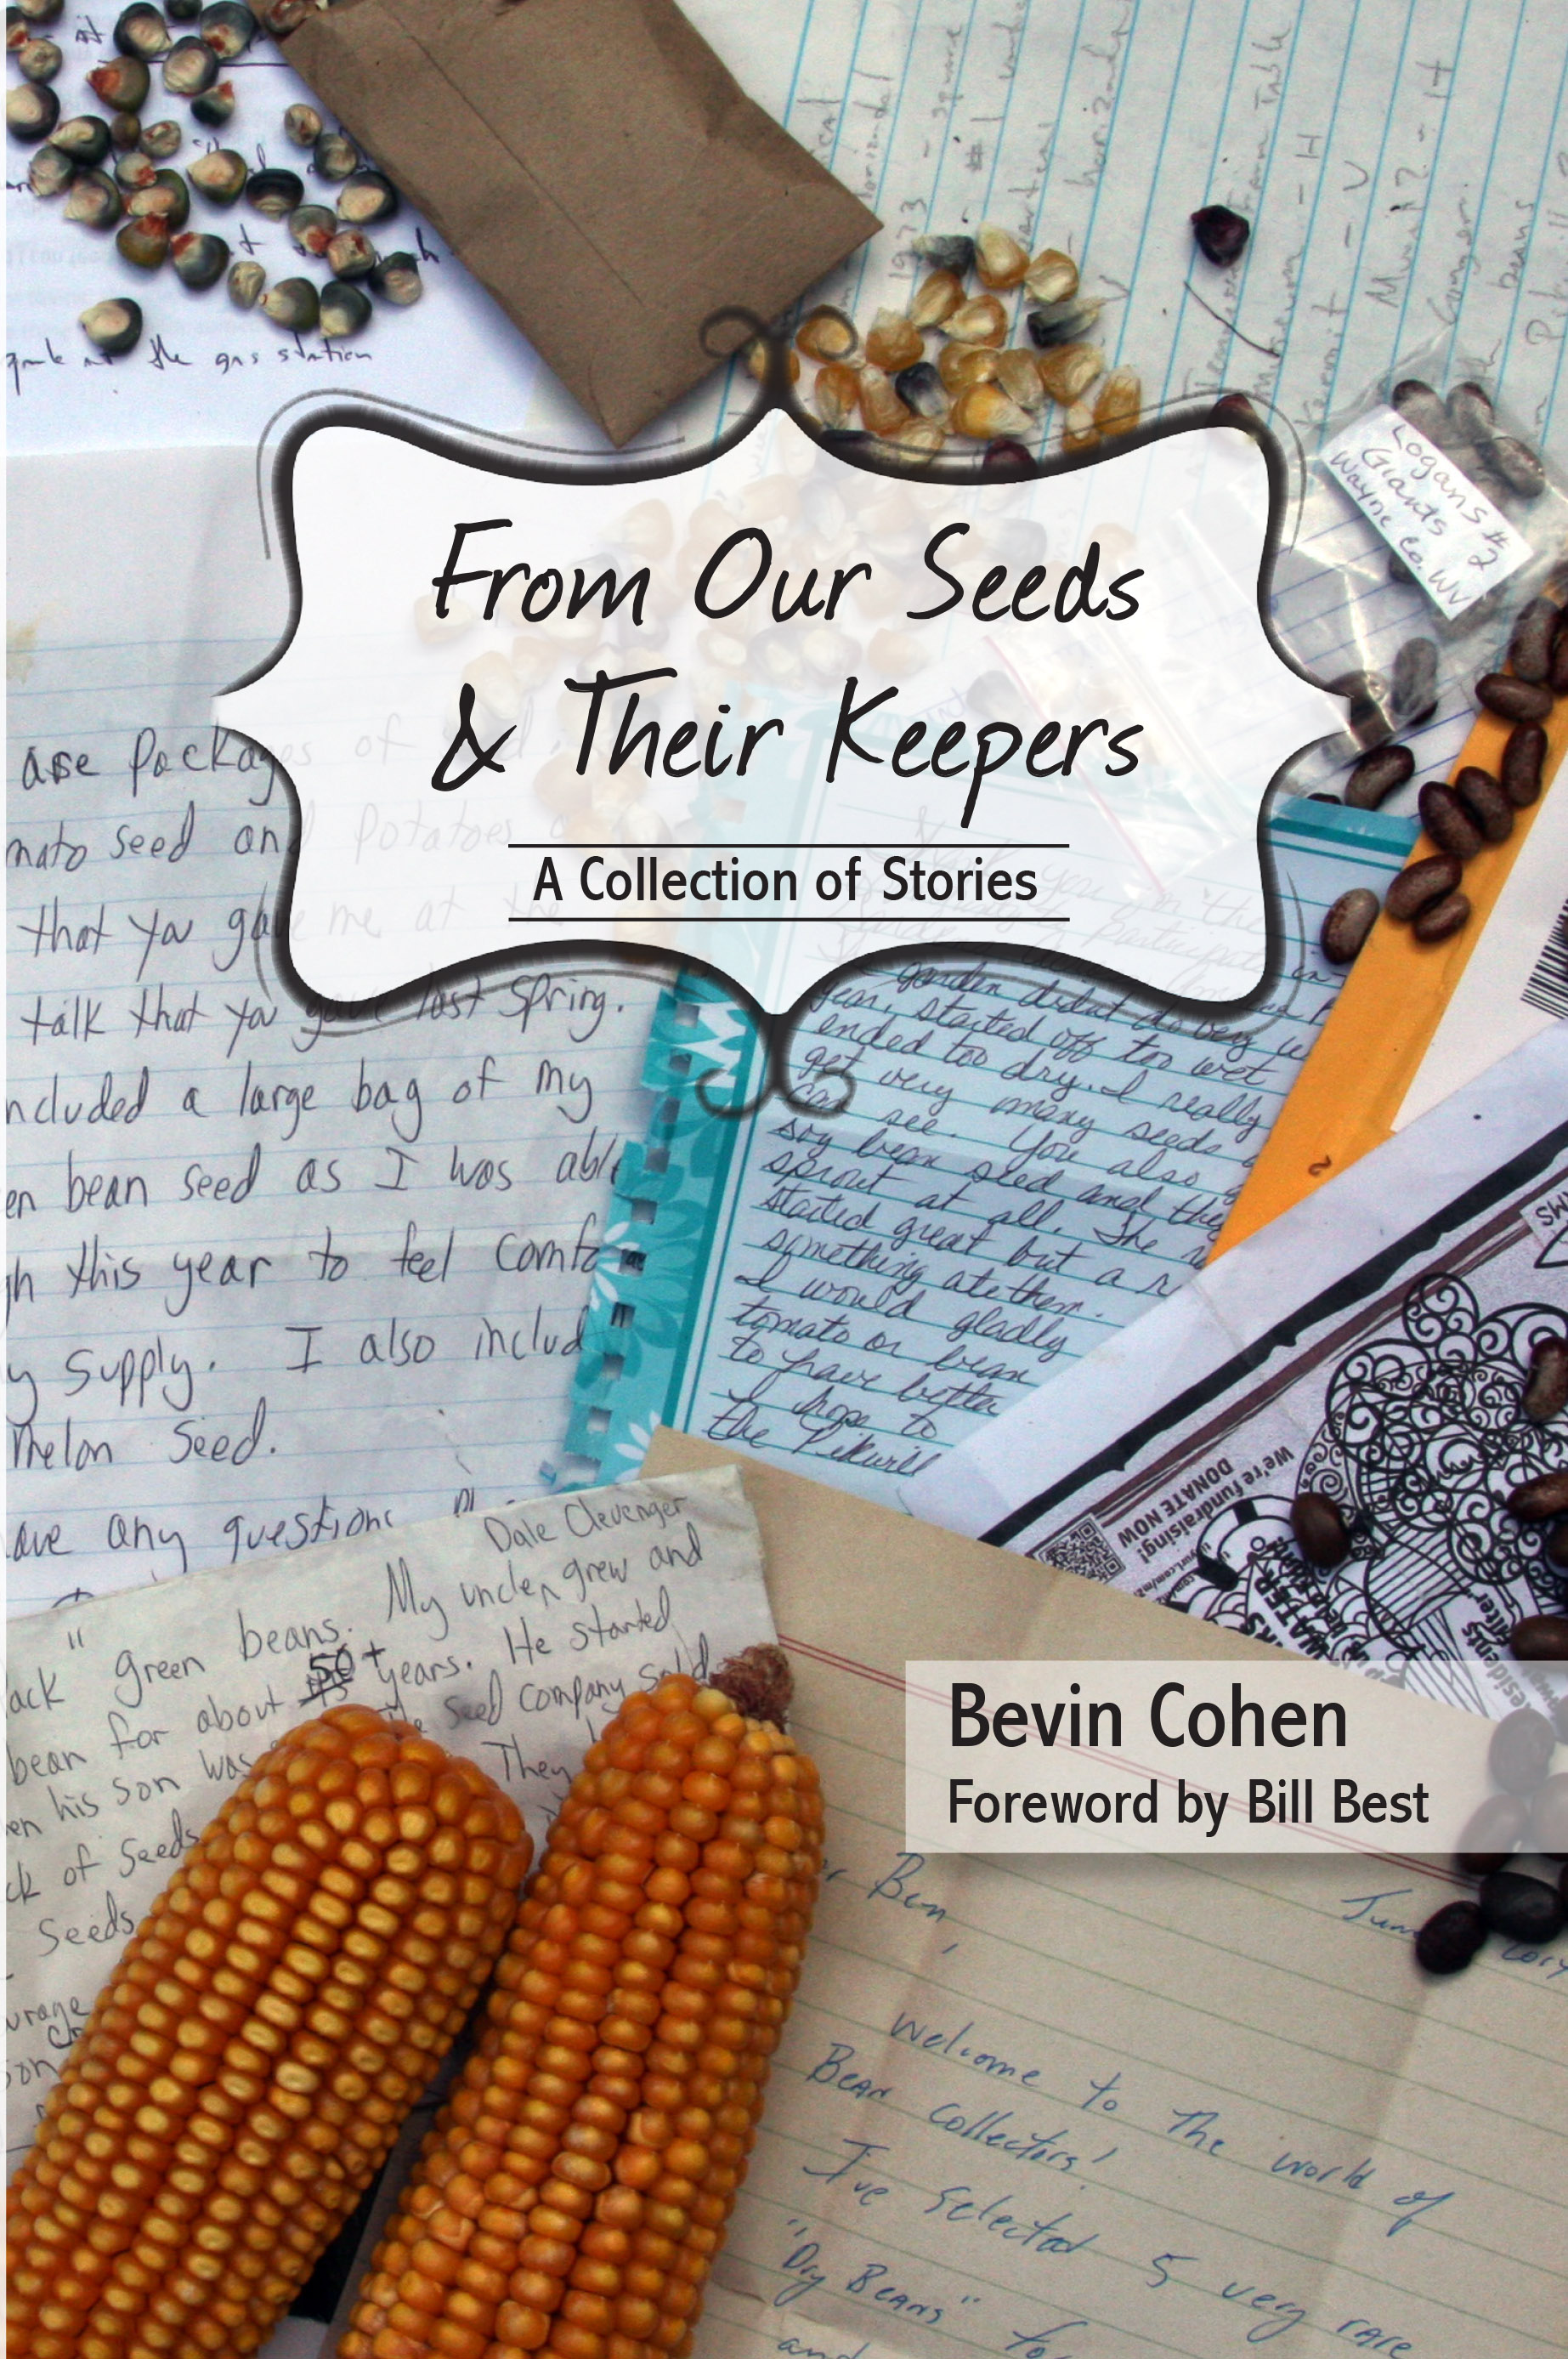 Ben Cohen From Our Seeds and Their Keepers